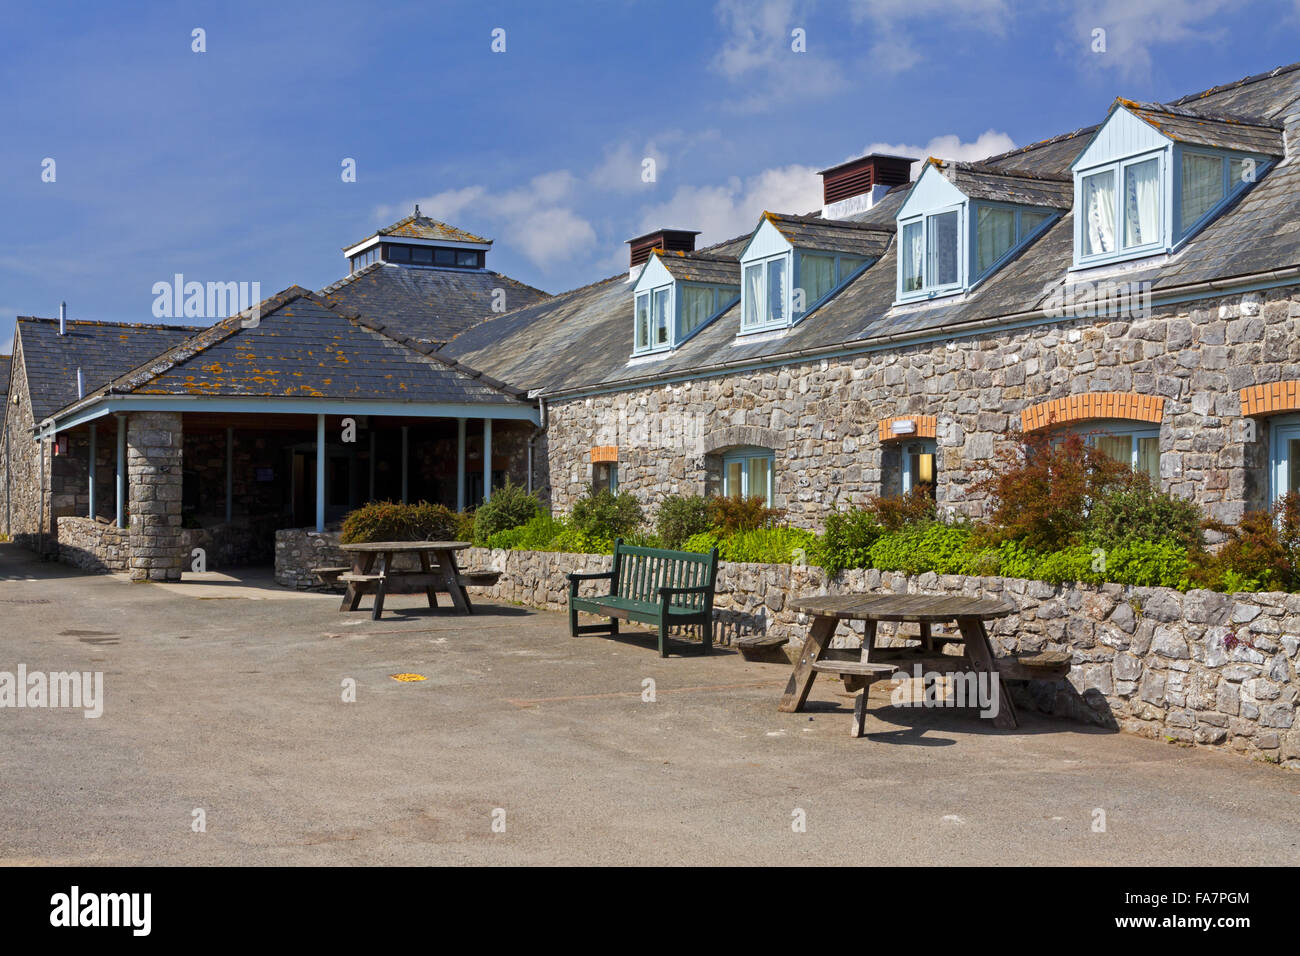 Exterior of the Stackpole Outdoor Learning Centre, on the Stackpole Estate, Pembrokeshire. - Stock Image